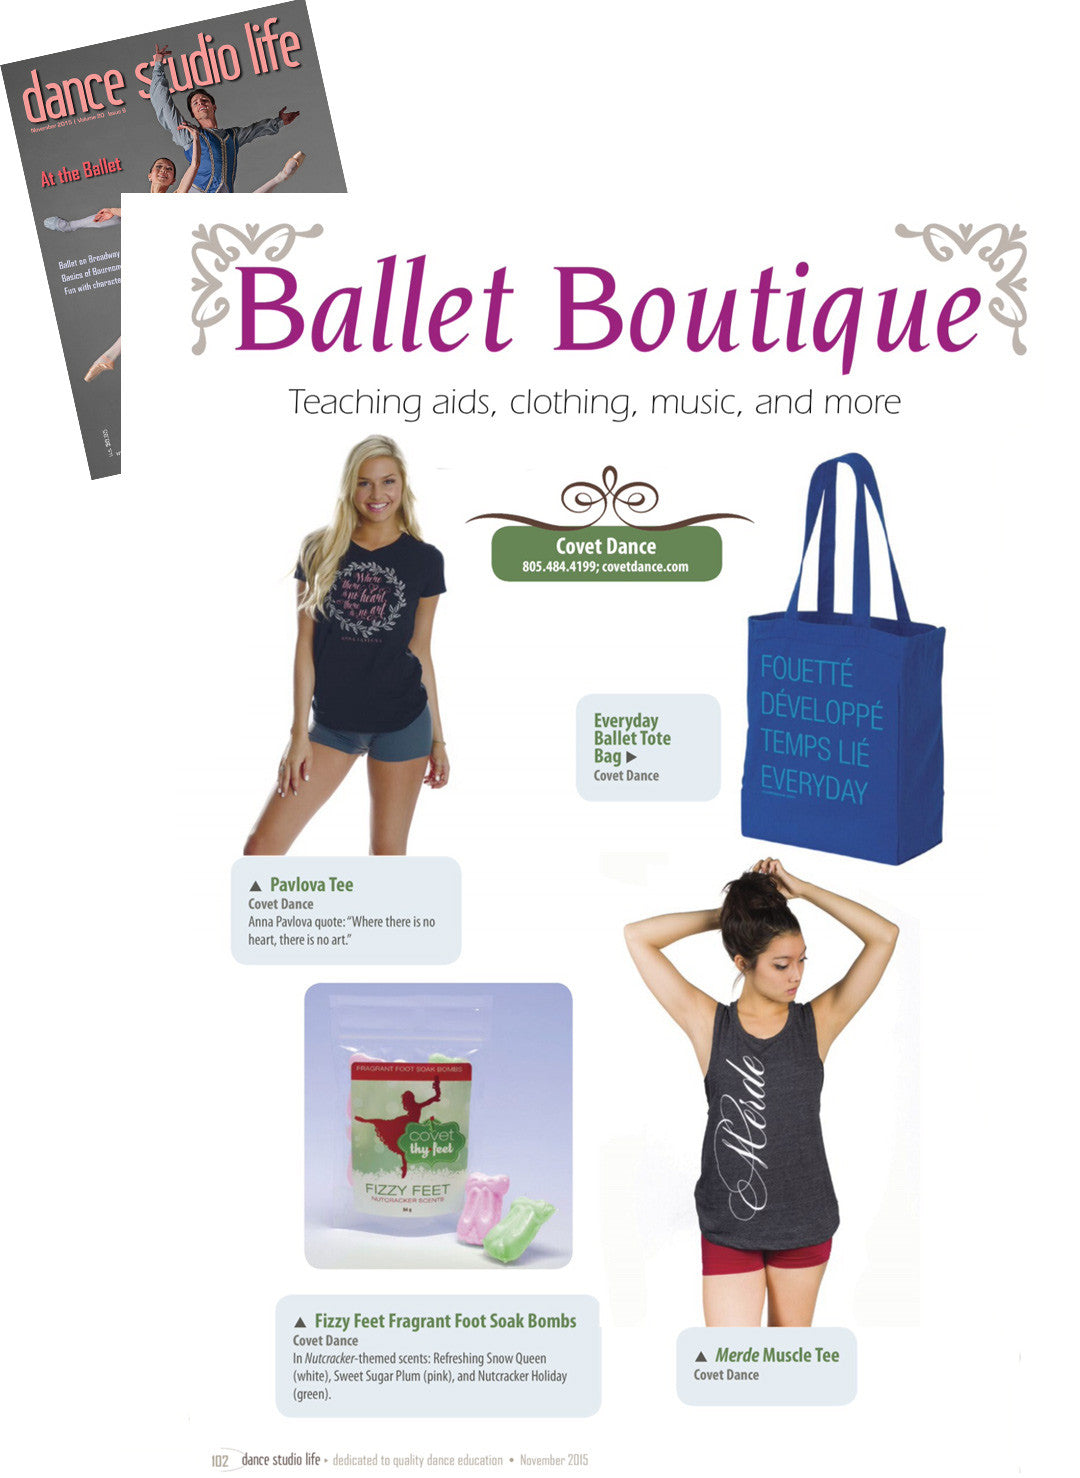 Dance Studio Life Features Covet Dance in their Ballet Boutique Editorial